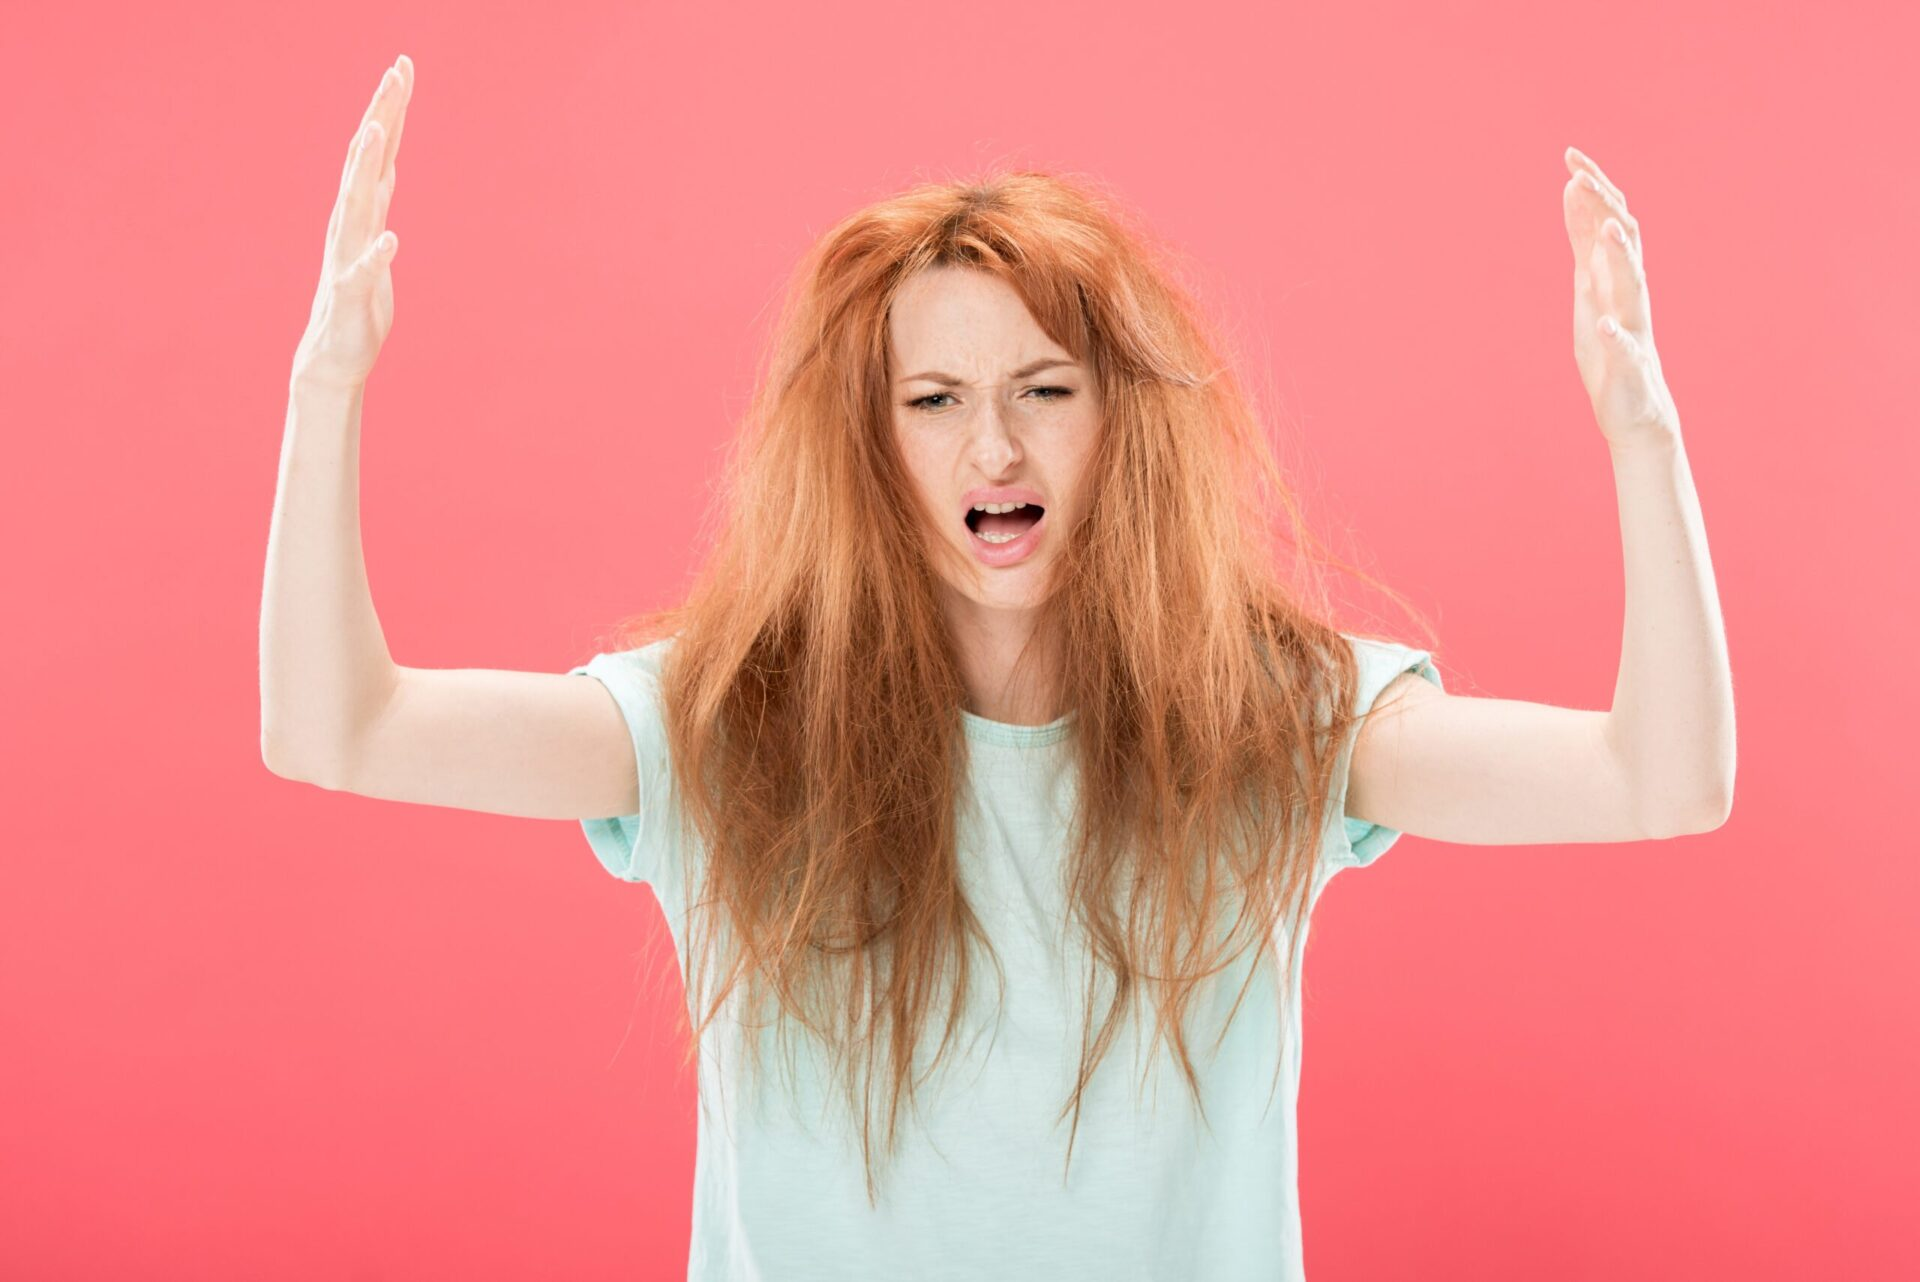 redhead frustrated about her oily hair that needs dry shampoo